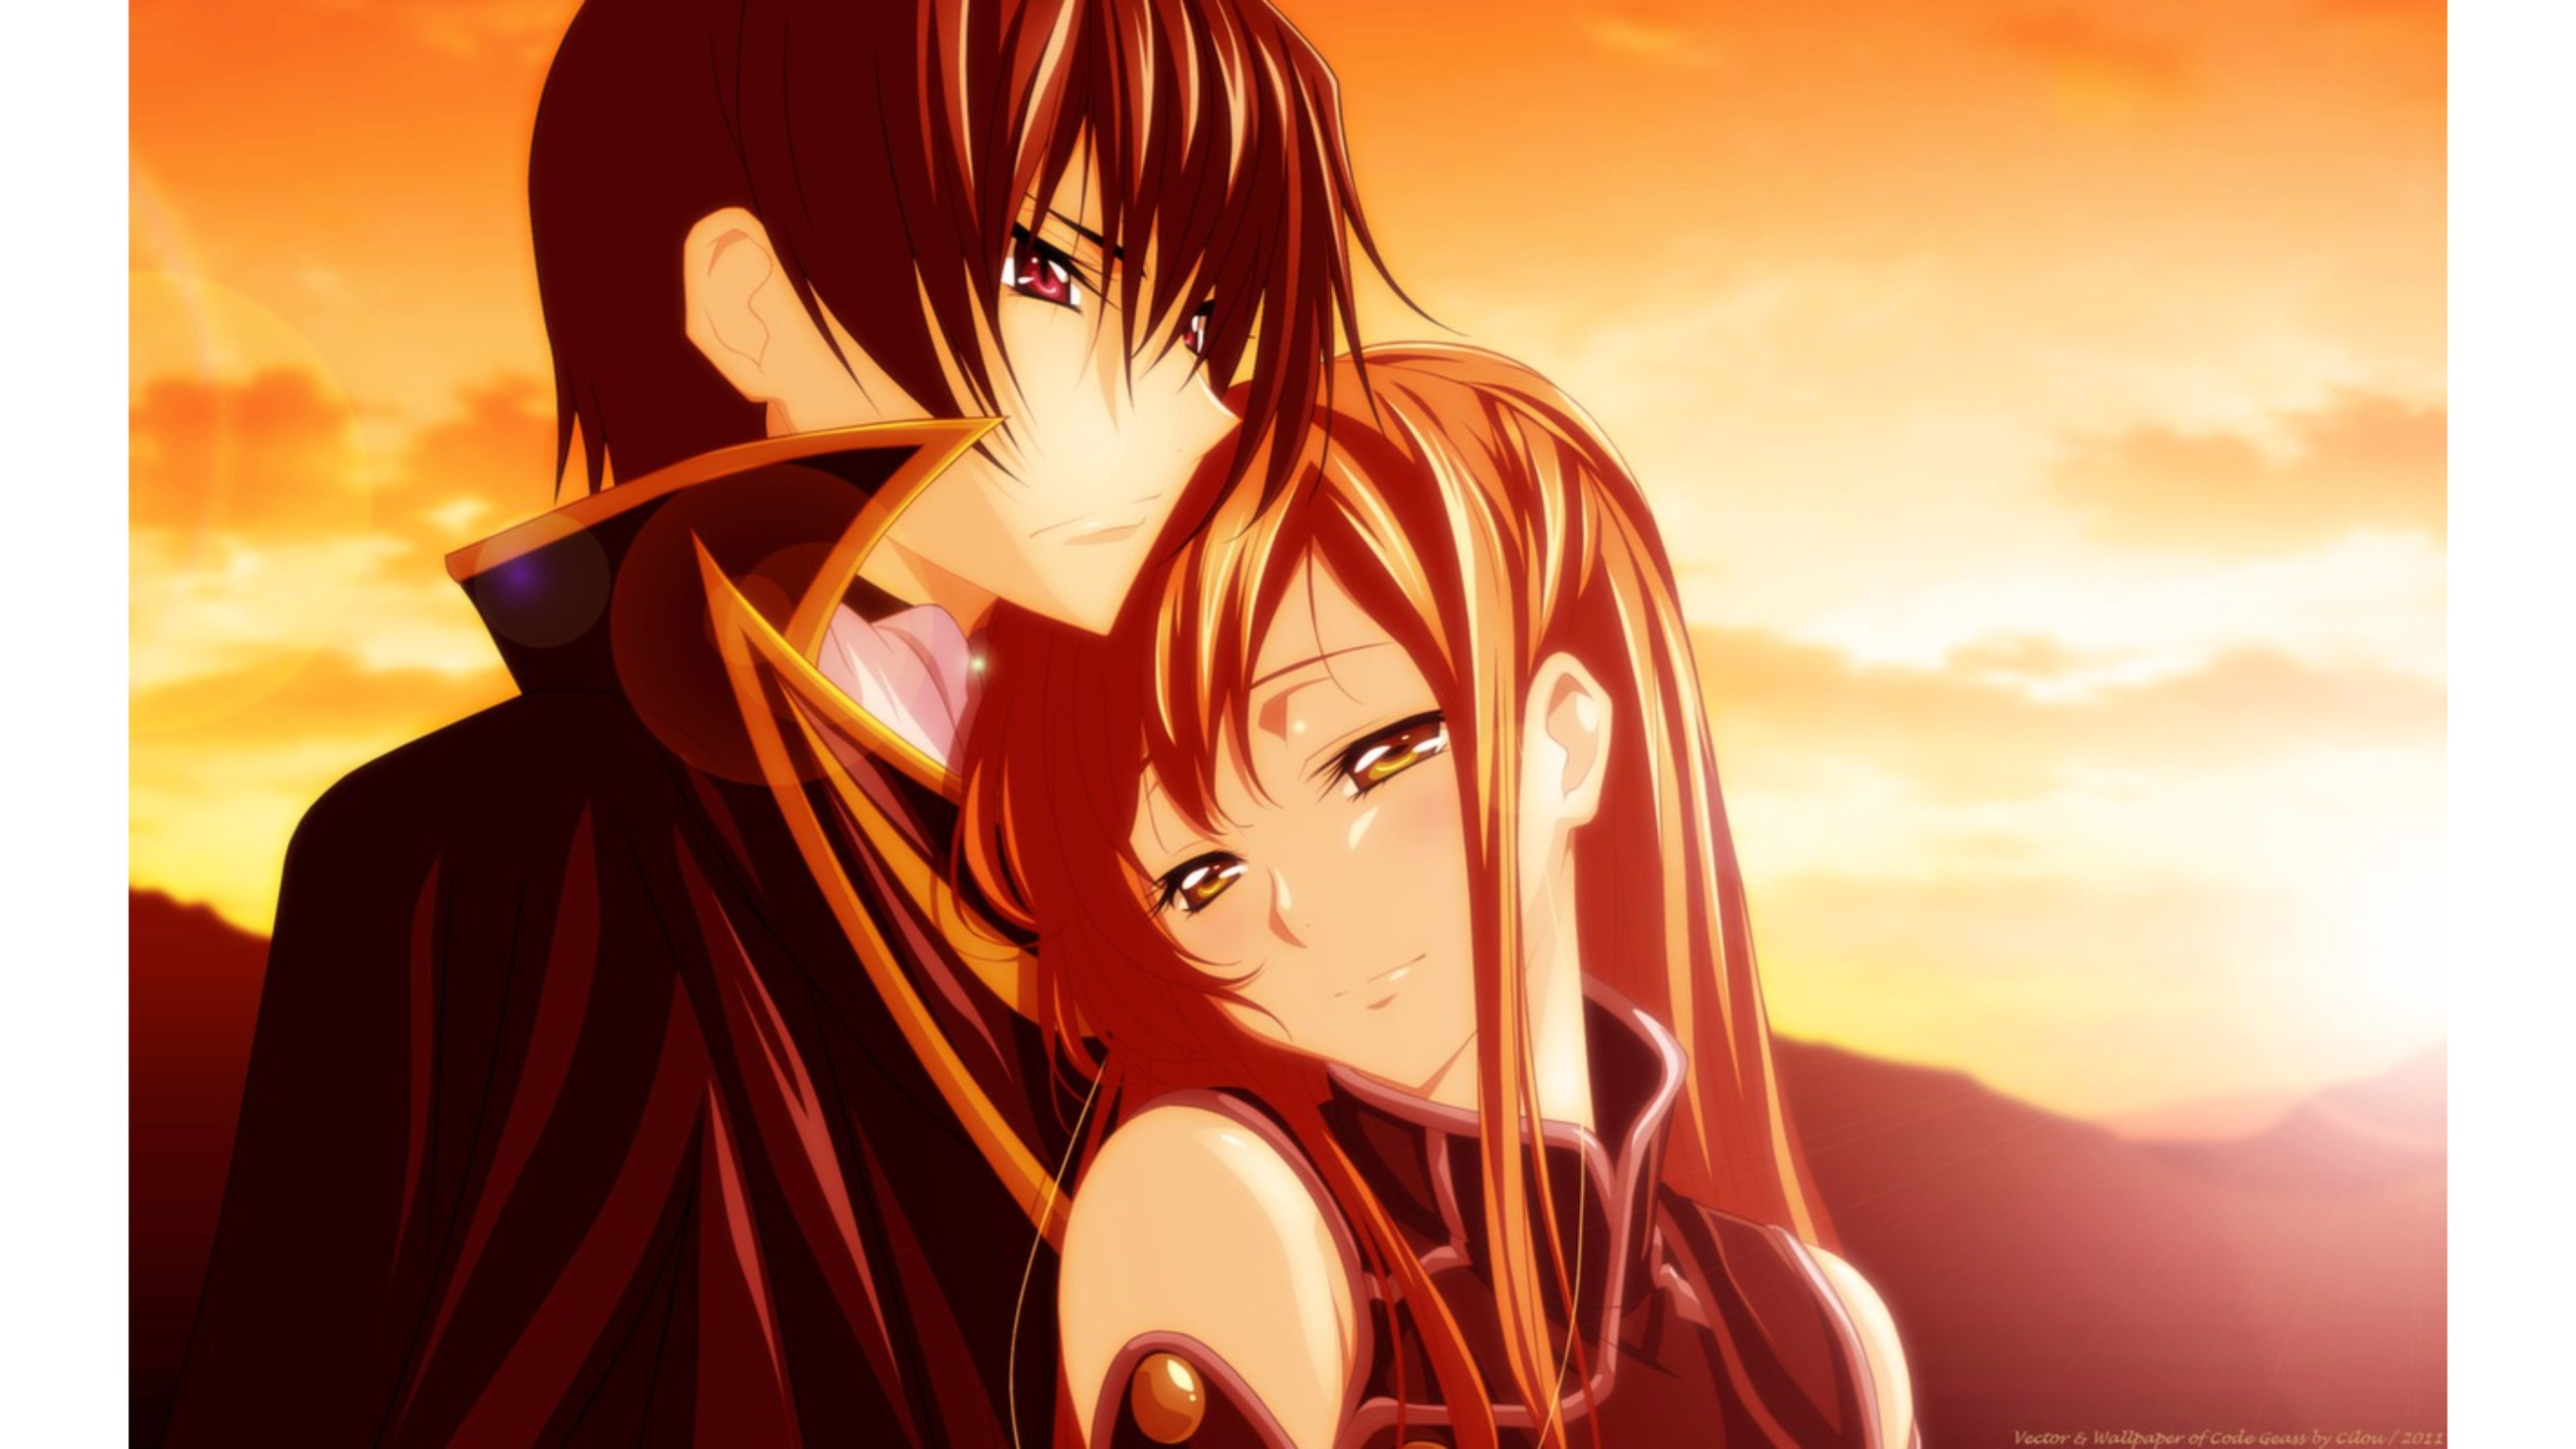 cute Love couple Hd Wallpaper Animated : Anime Love Wallpaper ??